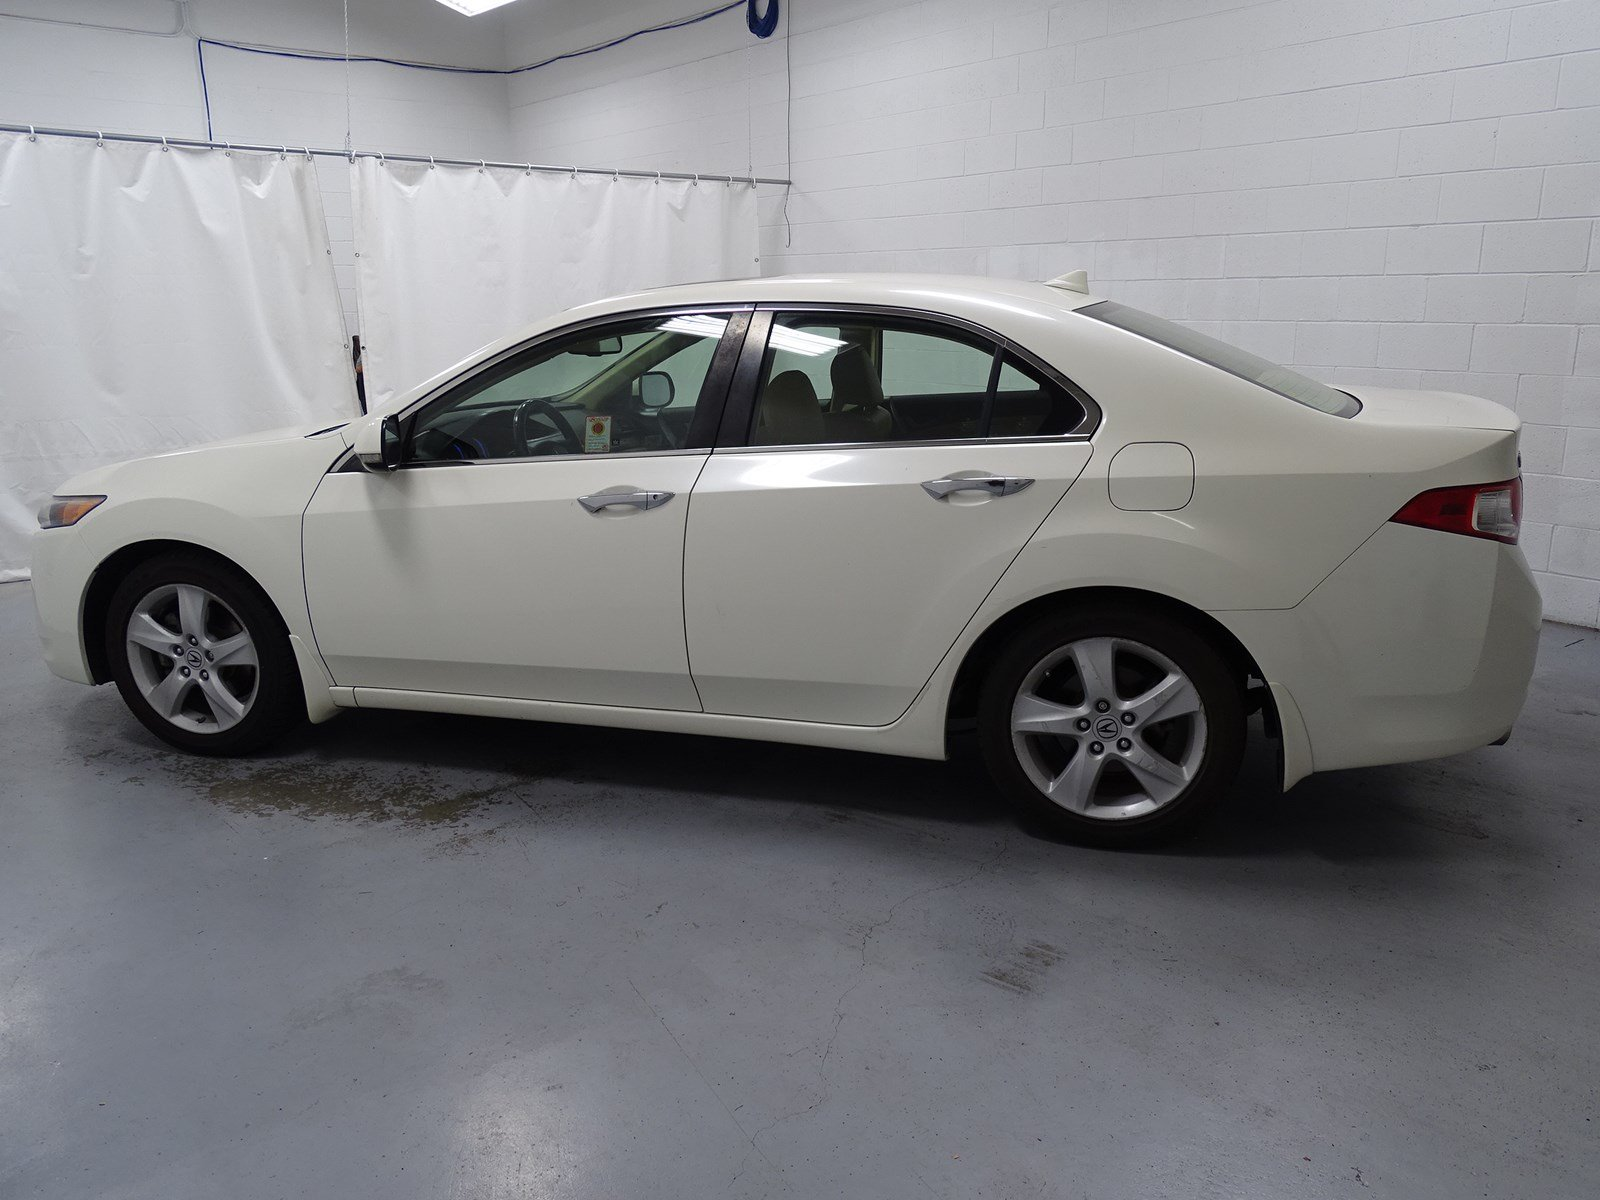 Pre Owned 2010 Acura TSX 4dr Car in WEST VALLEY CITY 1DW8102